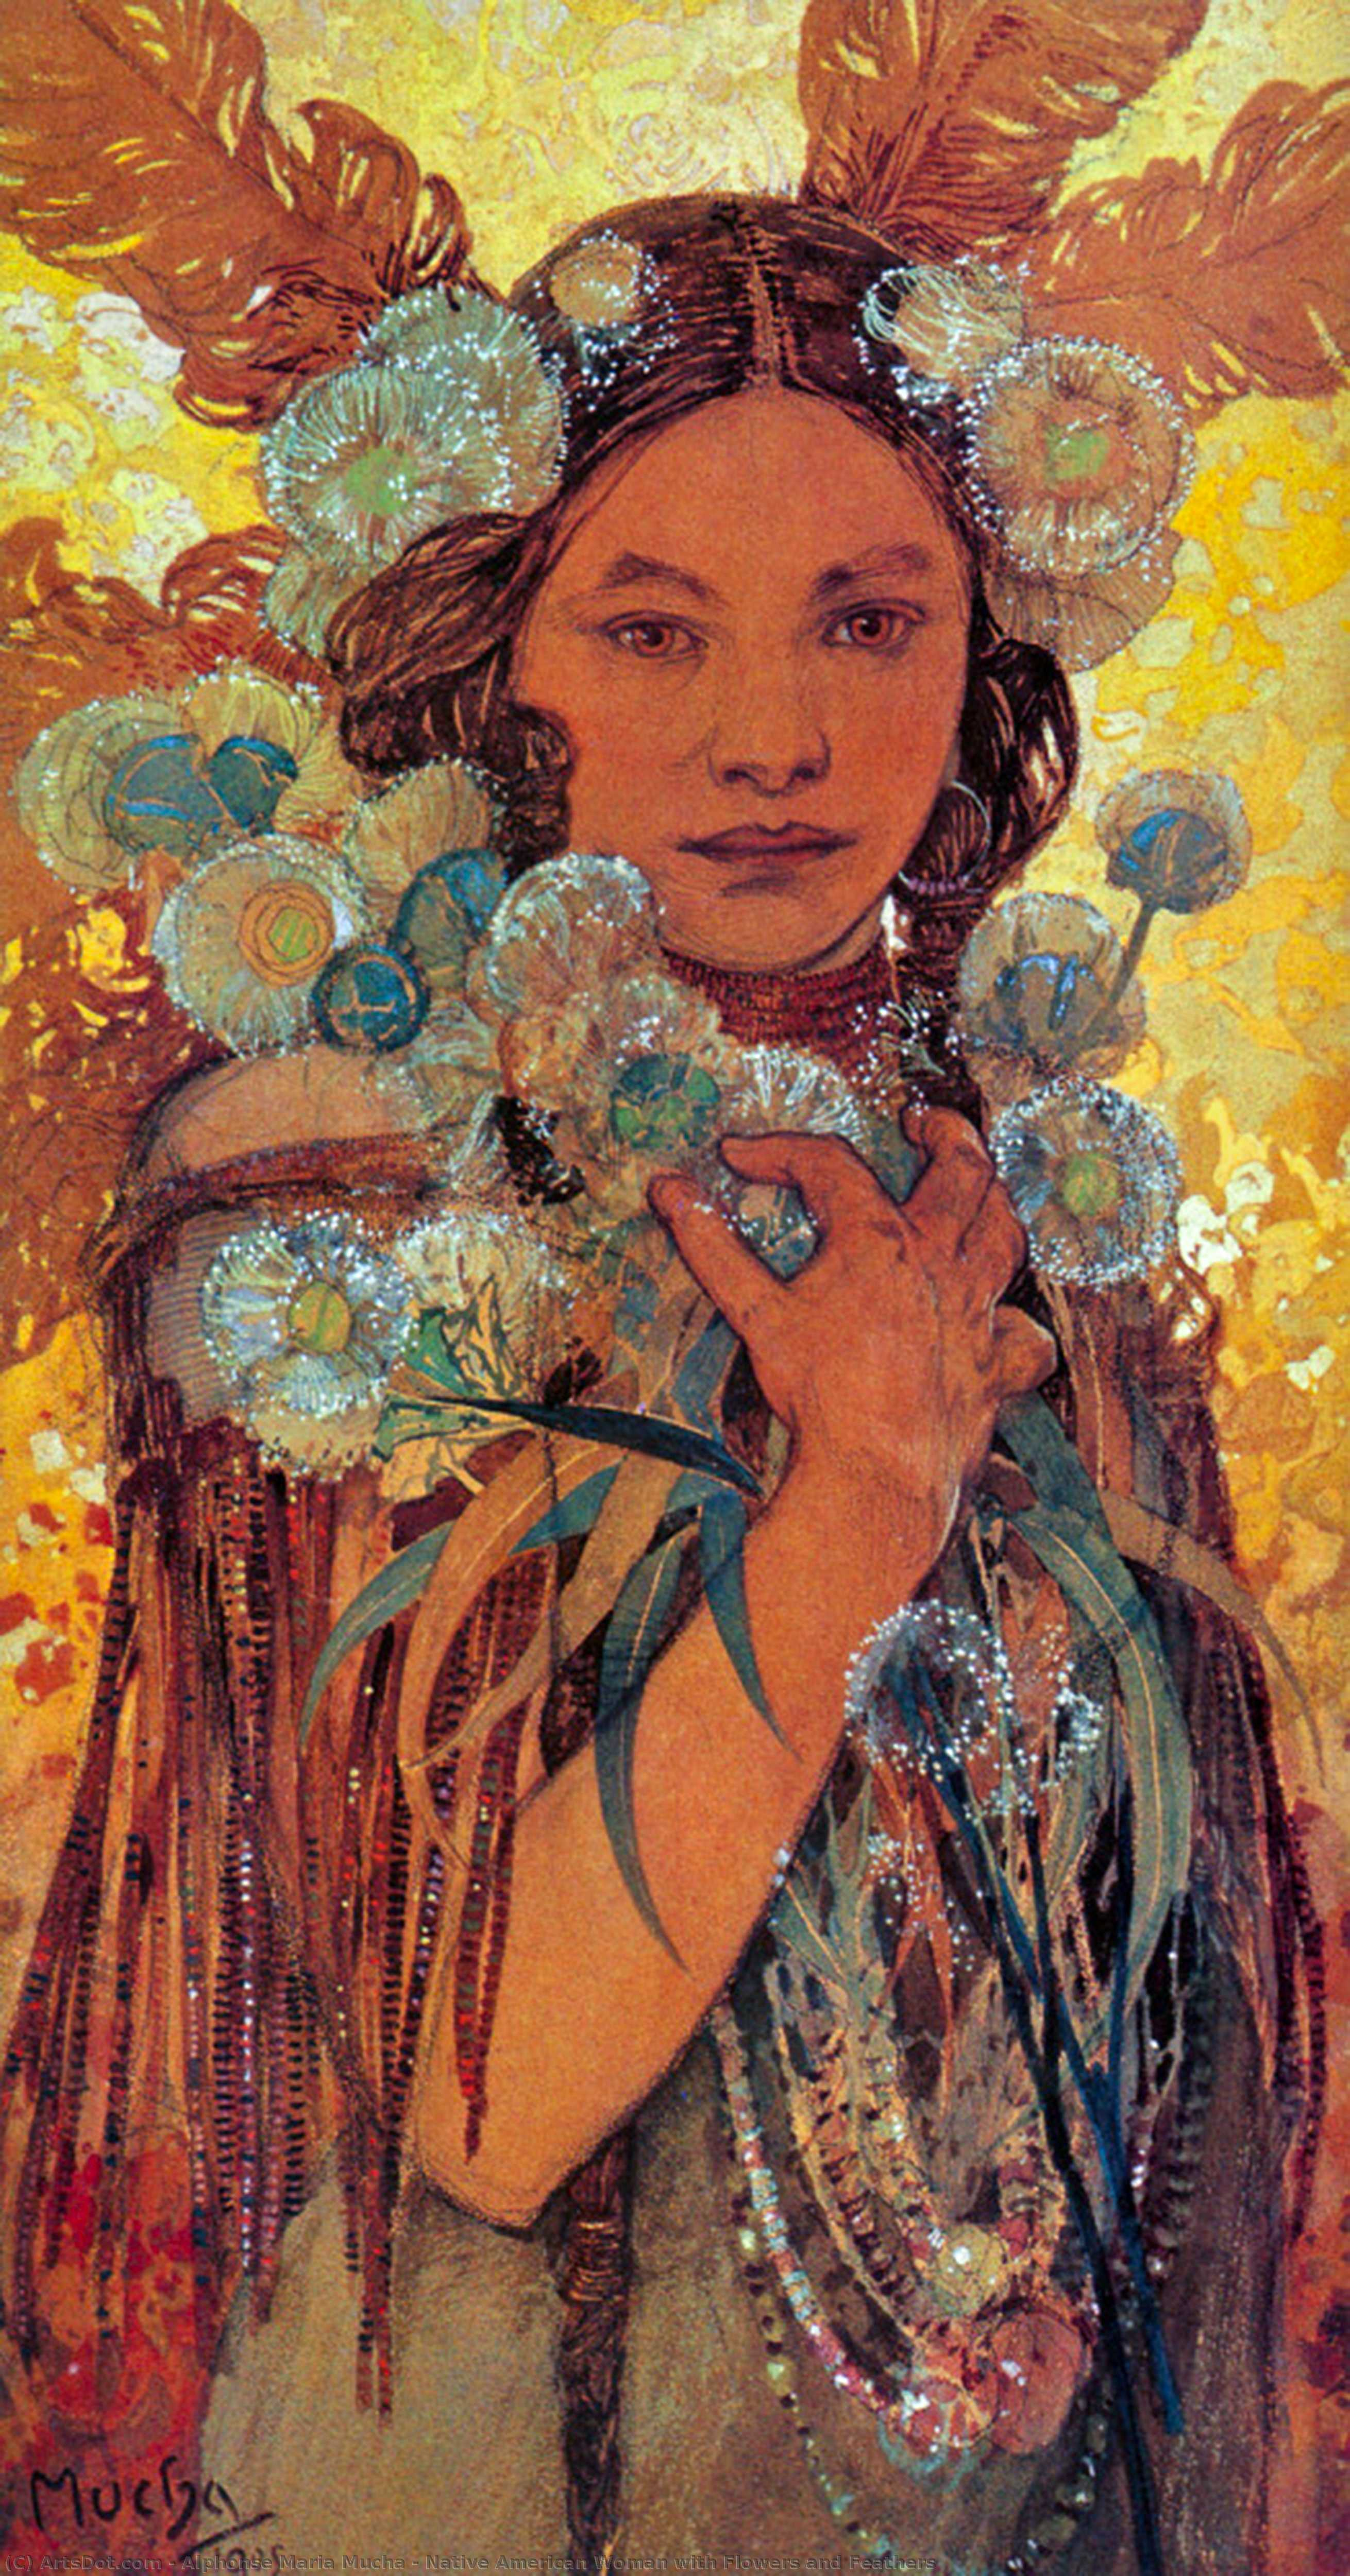 Wikioo.org - The Encyclopedia of Fine Arts - Painting, Artwork by Alphonse Maria Mucha - Native American Woman with Flowers and Feathers